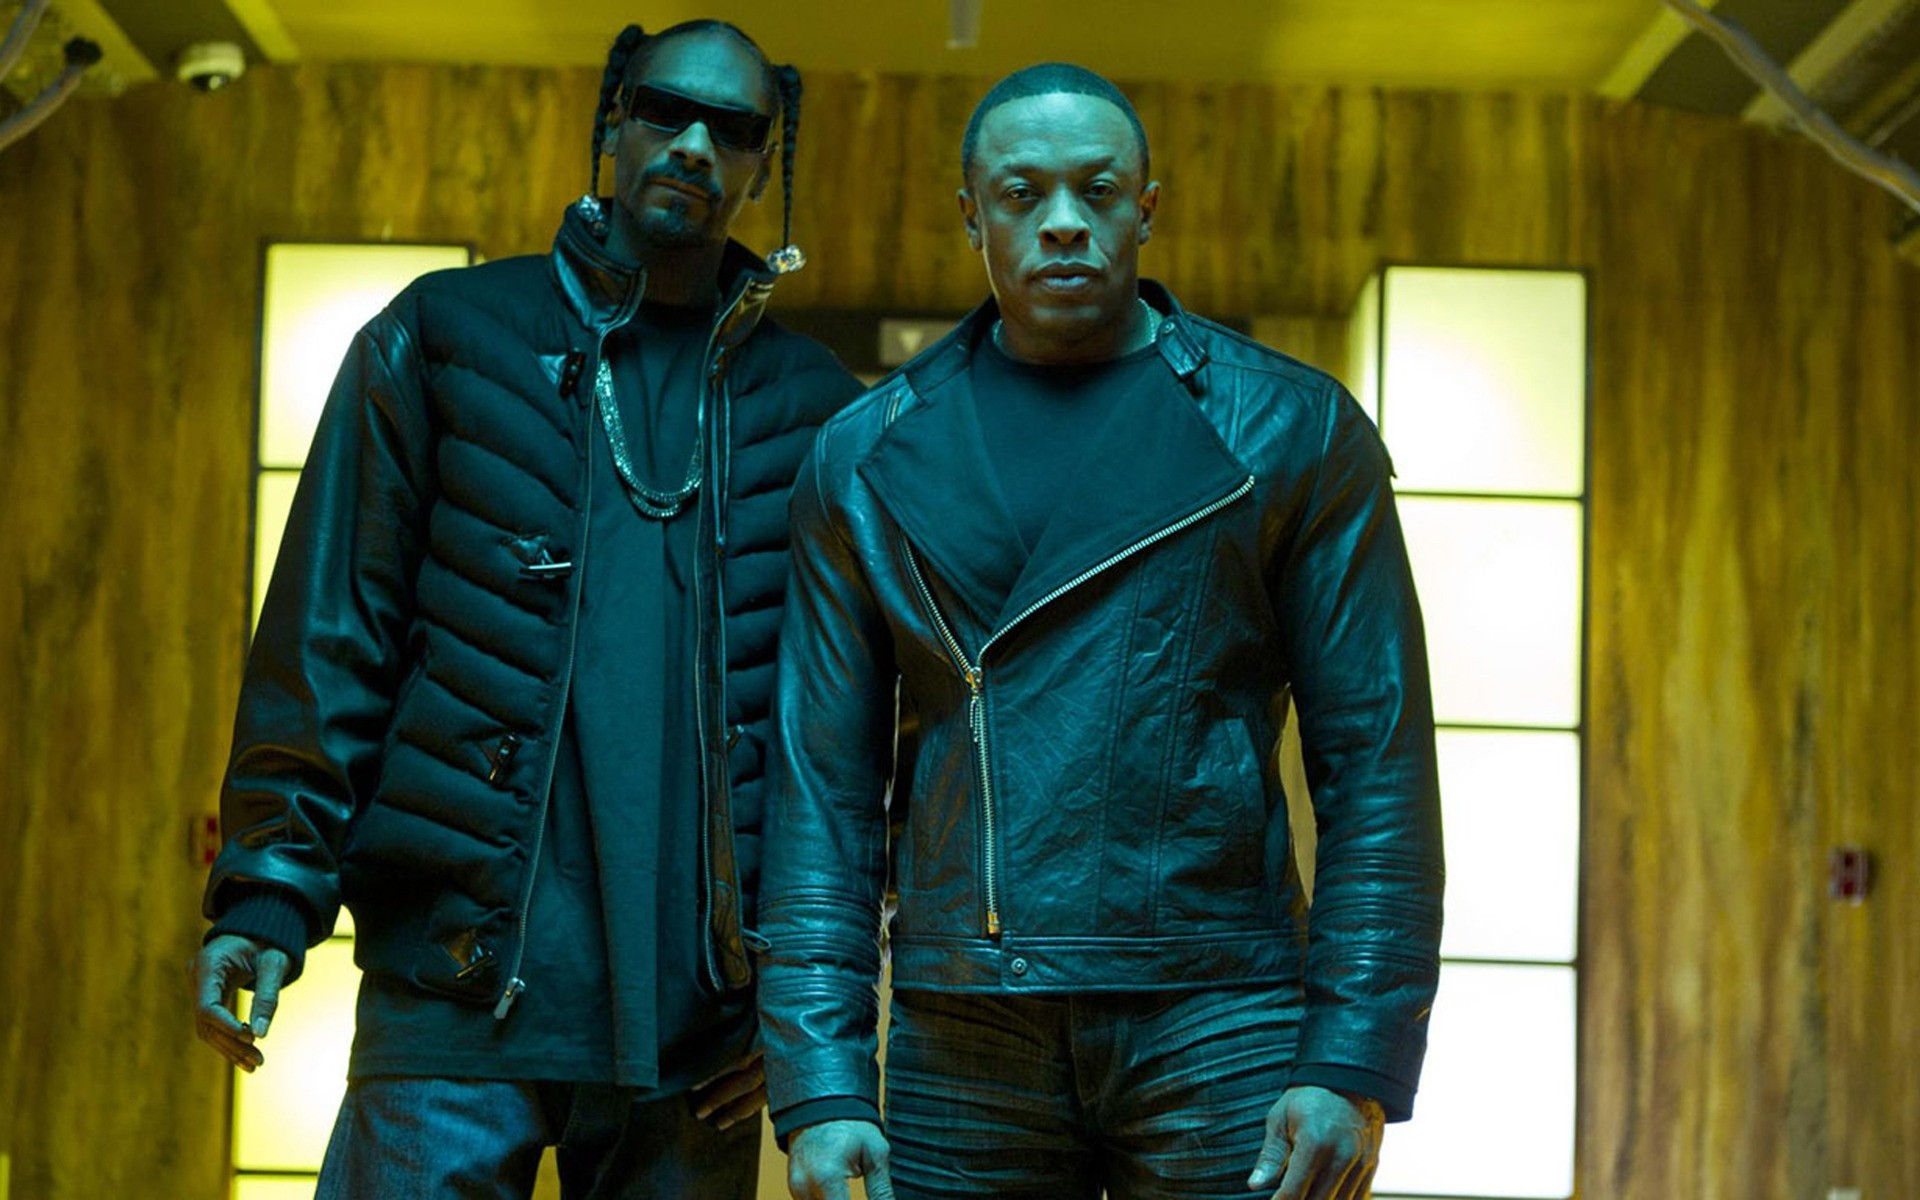 Snoop Dogg And Dr Dre Android Wallpapers For Free